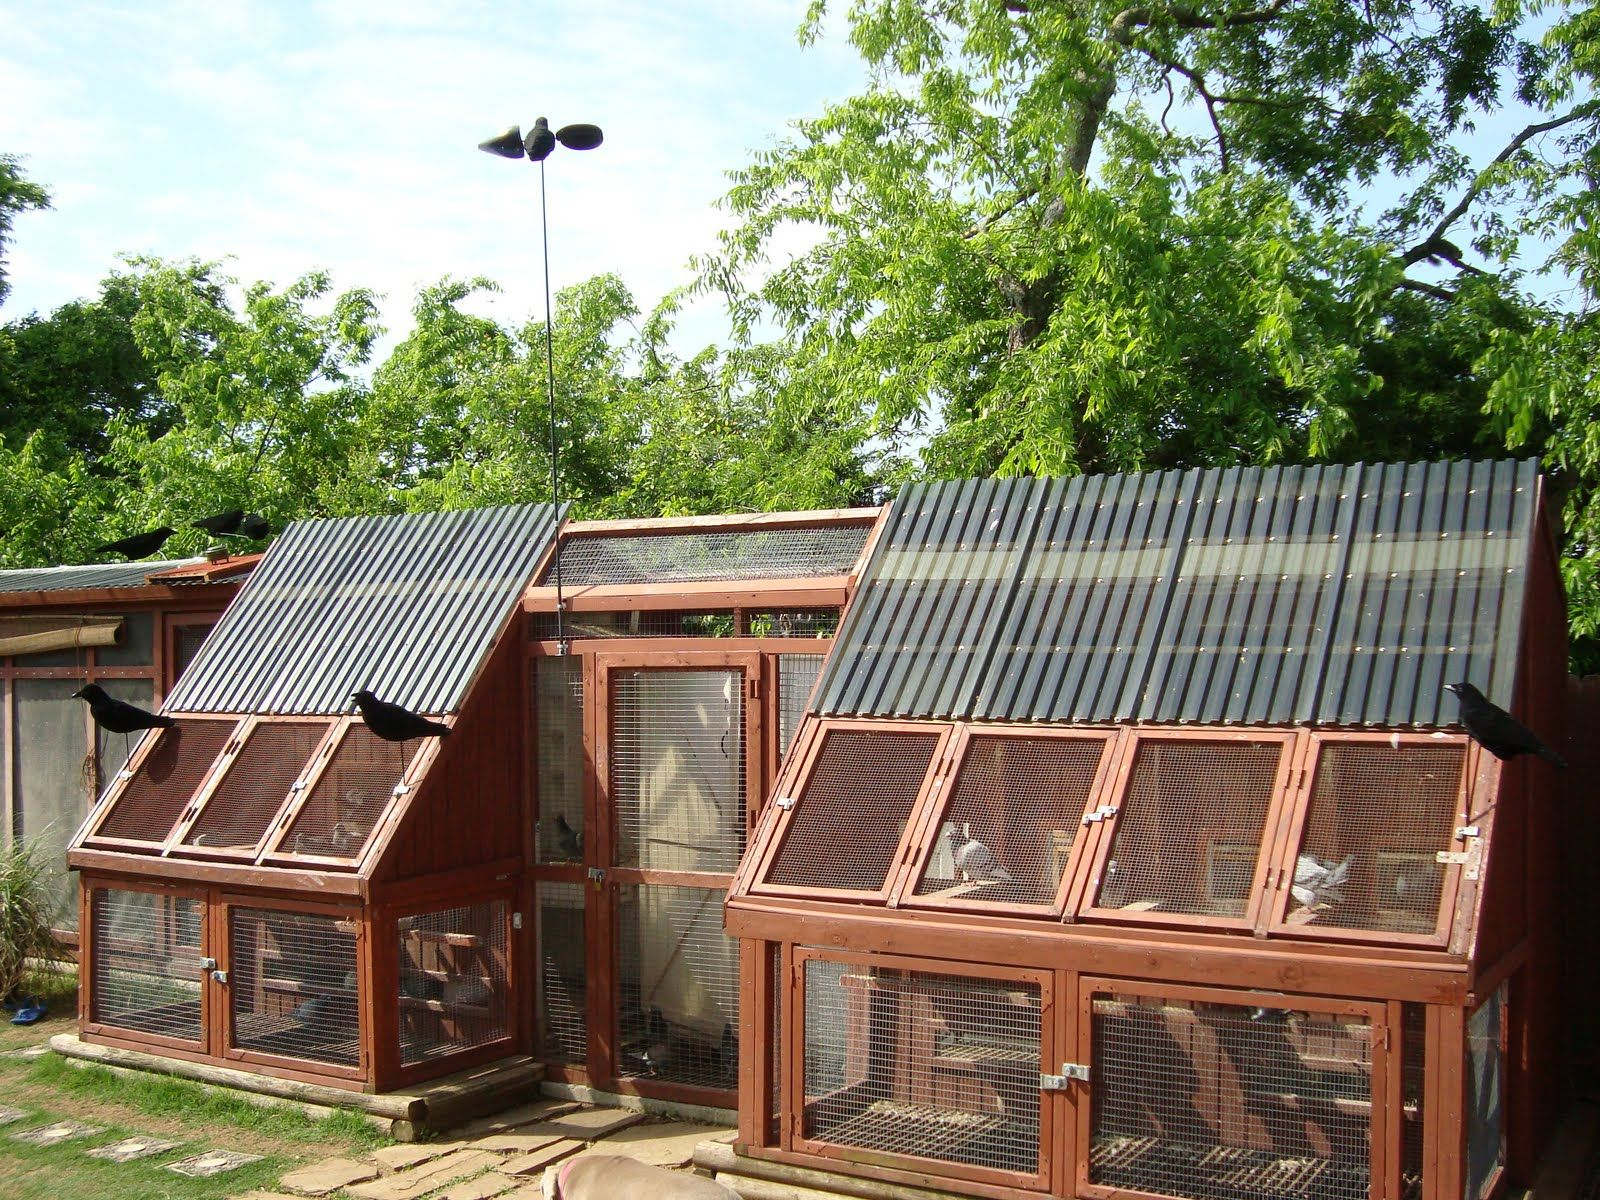 Pigeon coop pigeons and coops pinterest coops for Pigeon coop ideas